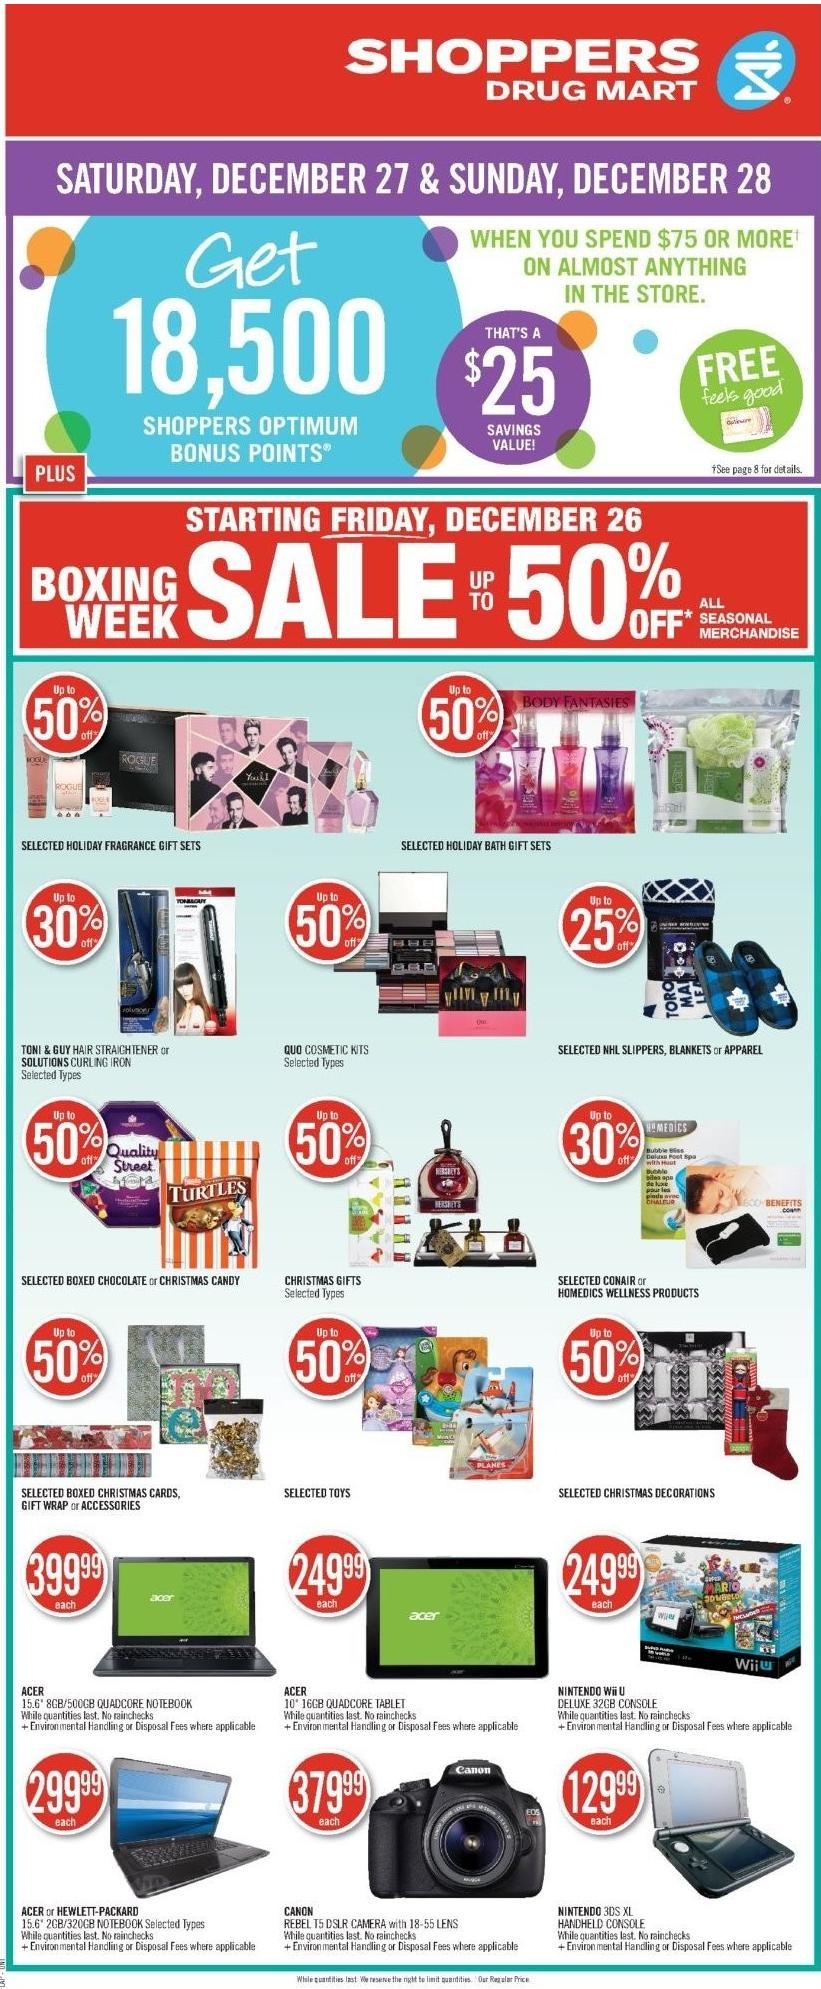 Next Week Shoppers Drug Mart Flyer Online – Canadian Store Flyers Check out your favorite online flyers, your favorite stores, updated regularly for you to browse easily. Find all the specials & deals for shoppers drug mart in the next week flyer below.